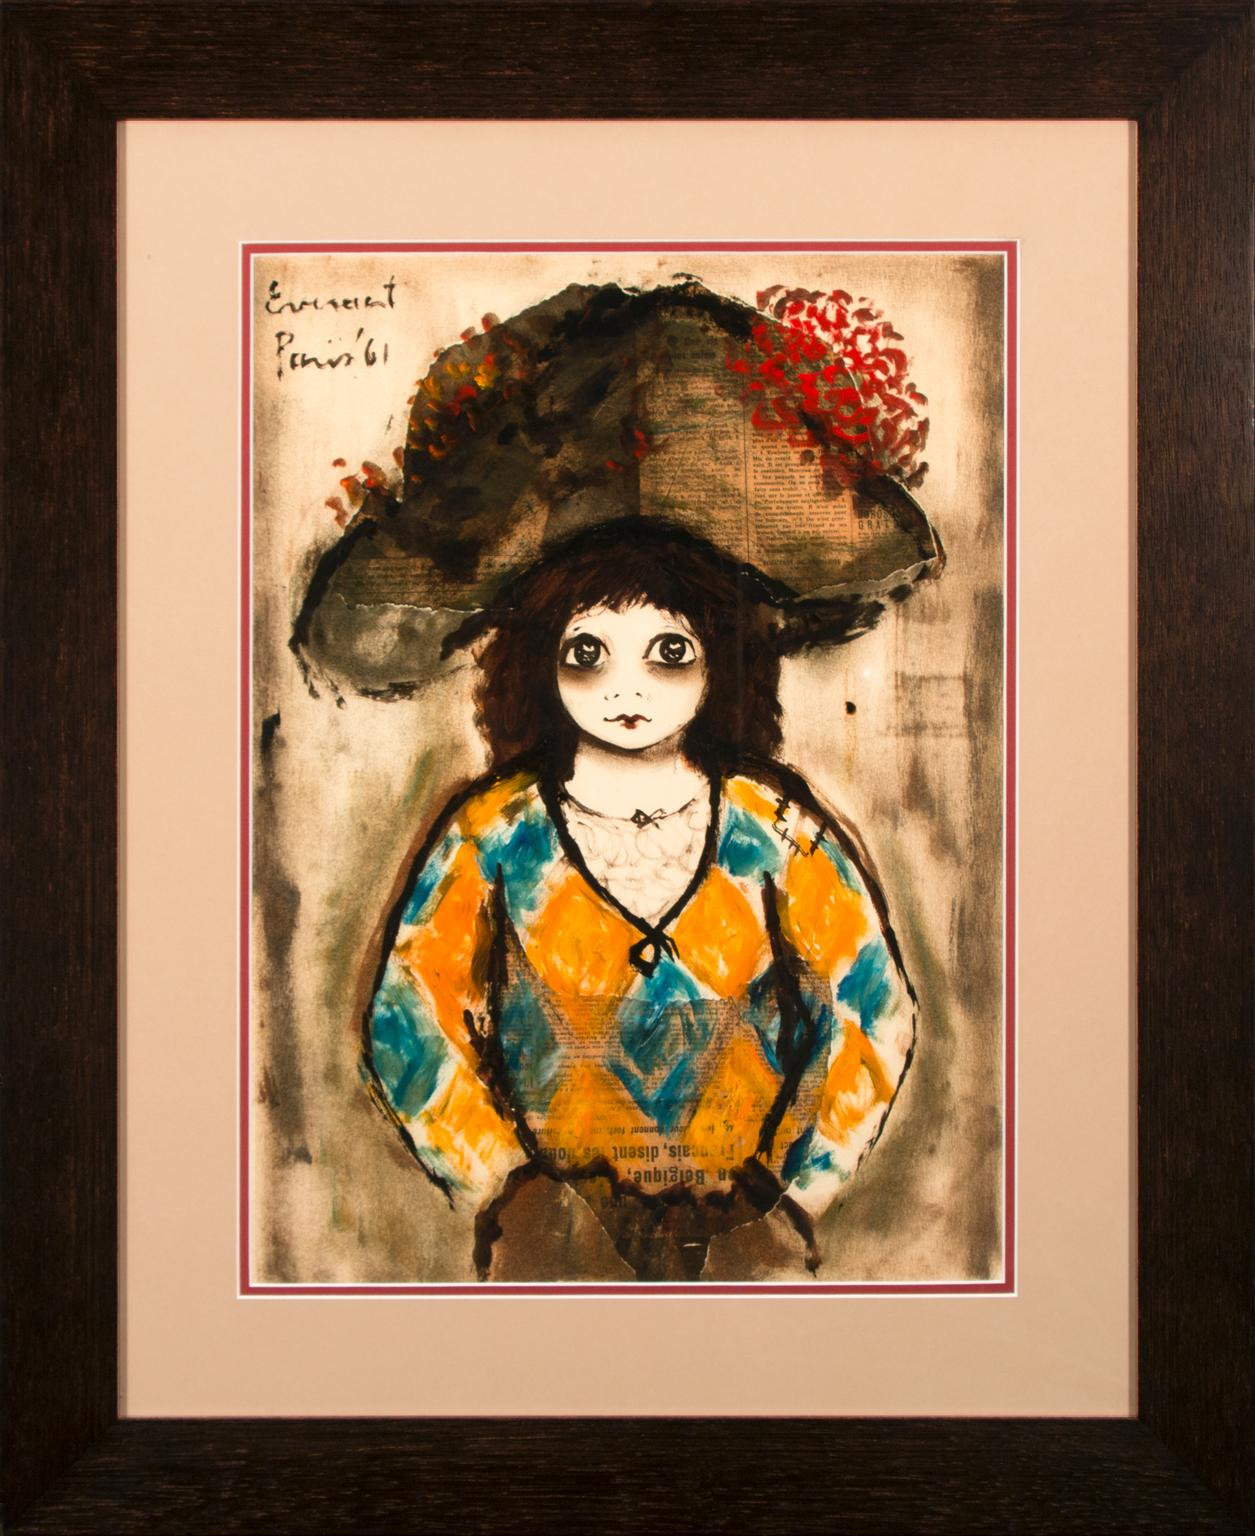 Untitled Harlequin Mixed-Media Painting by Roger Etienne Everaert, Framed